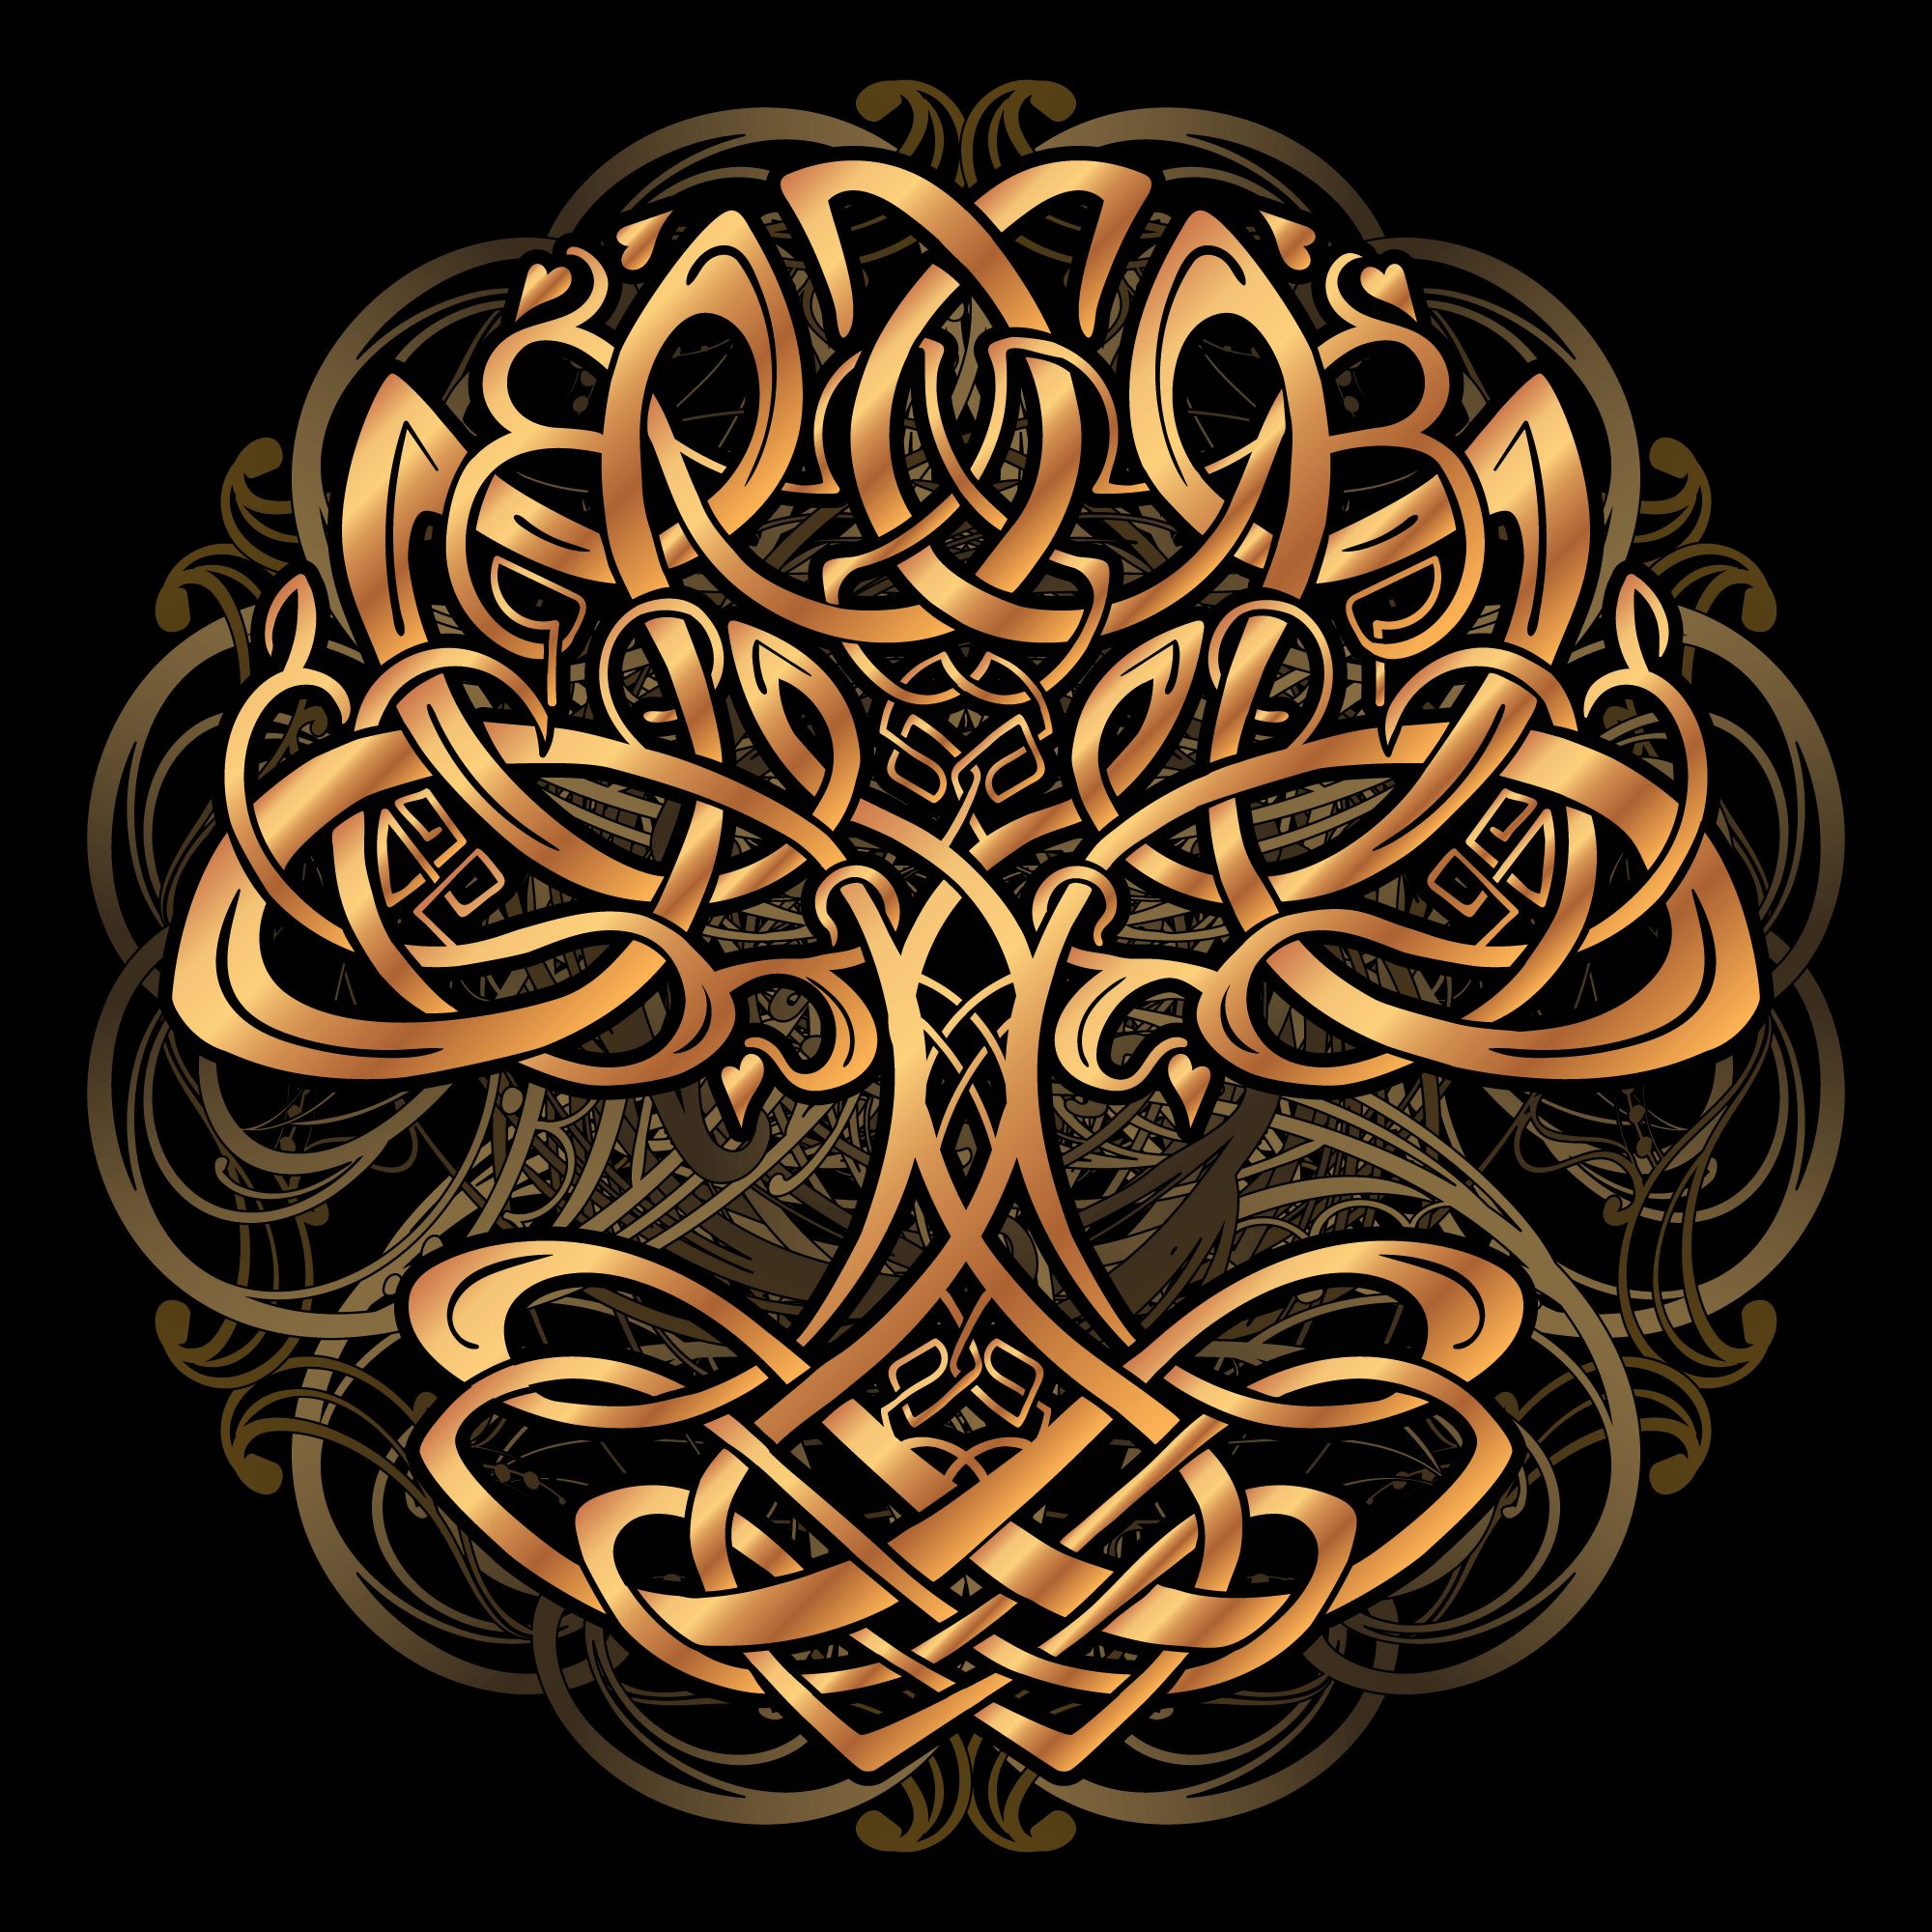 Tree of Life Meaning and Symbolism, Yggdrasil the Norse World Tree in Mythology